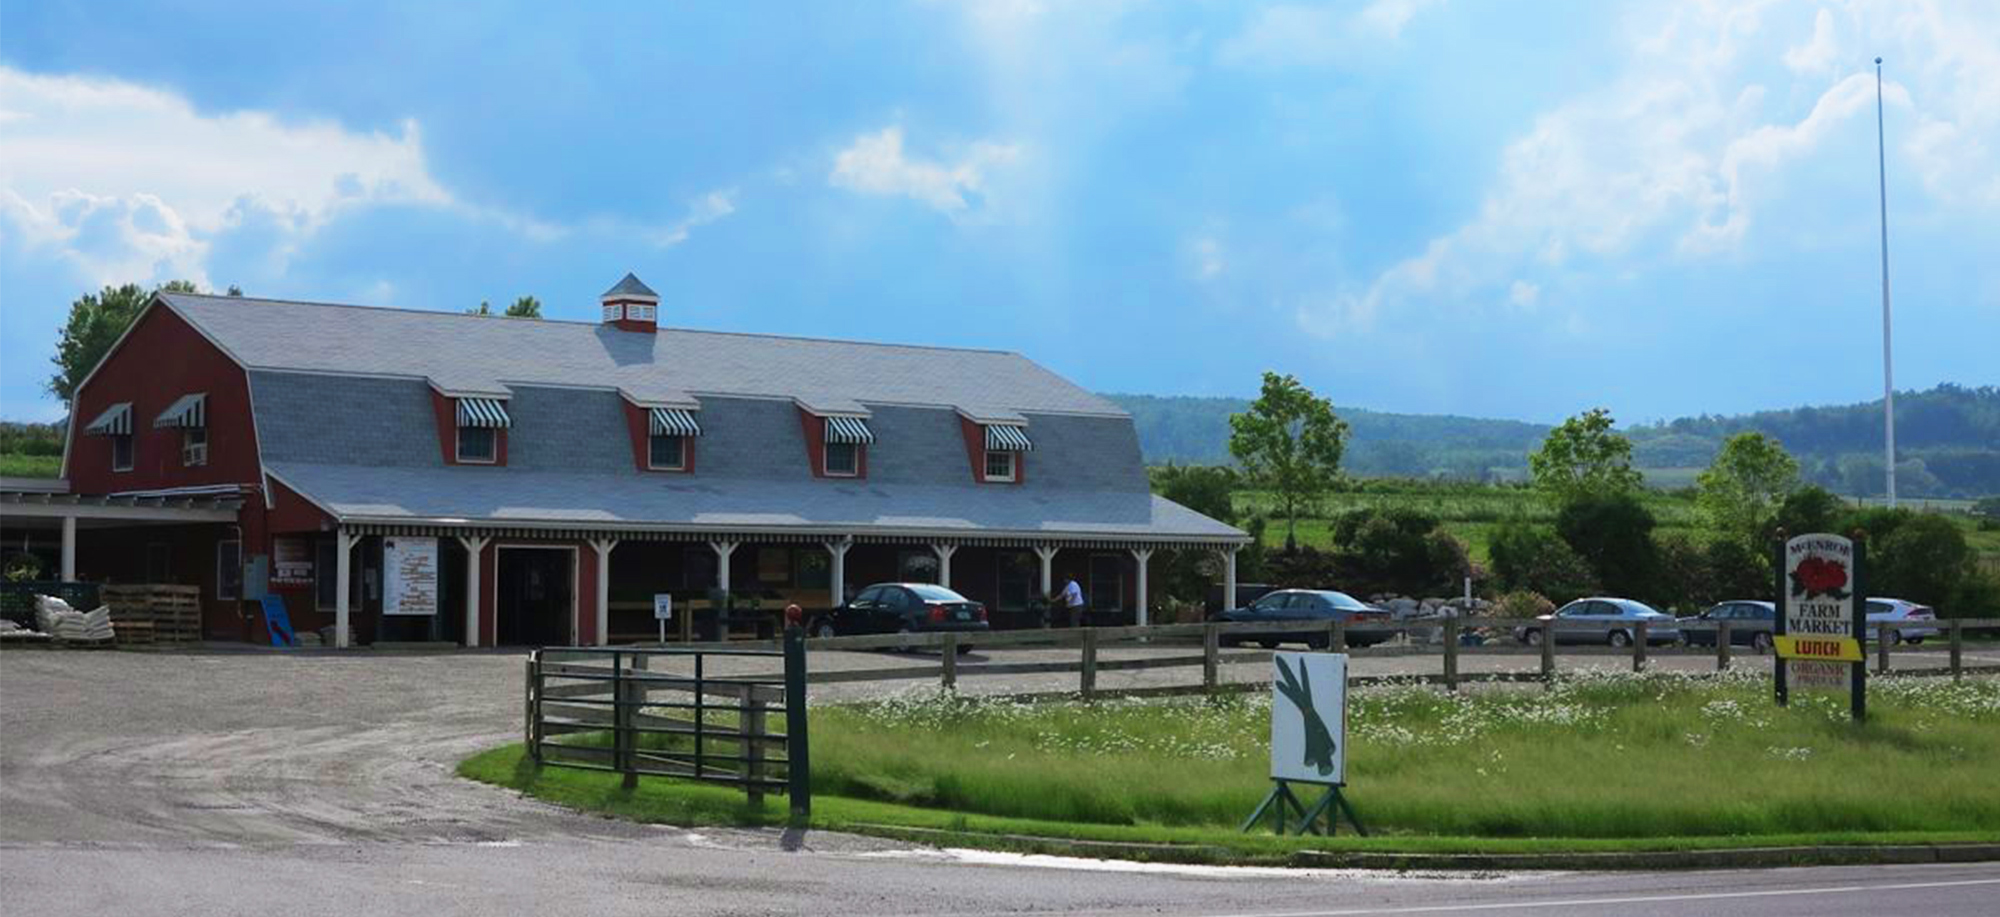 McEnroe Organic Farm Market is Located on 5409 Route 22 in Millerton, New York